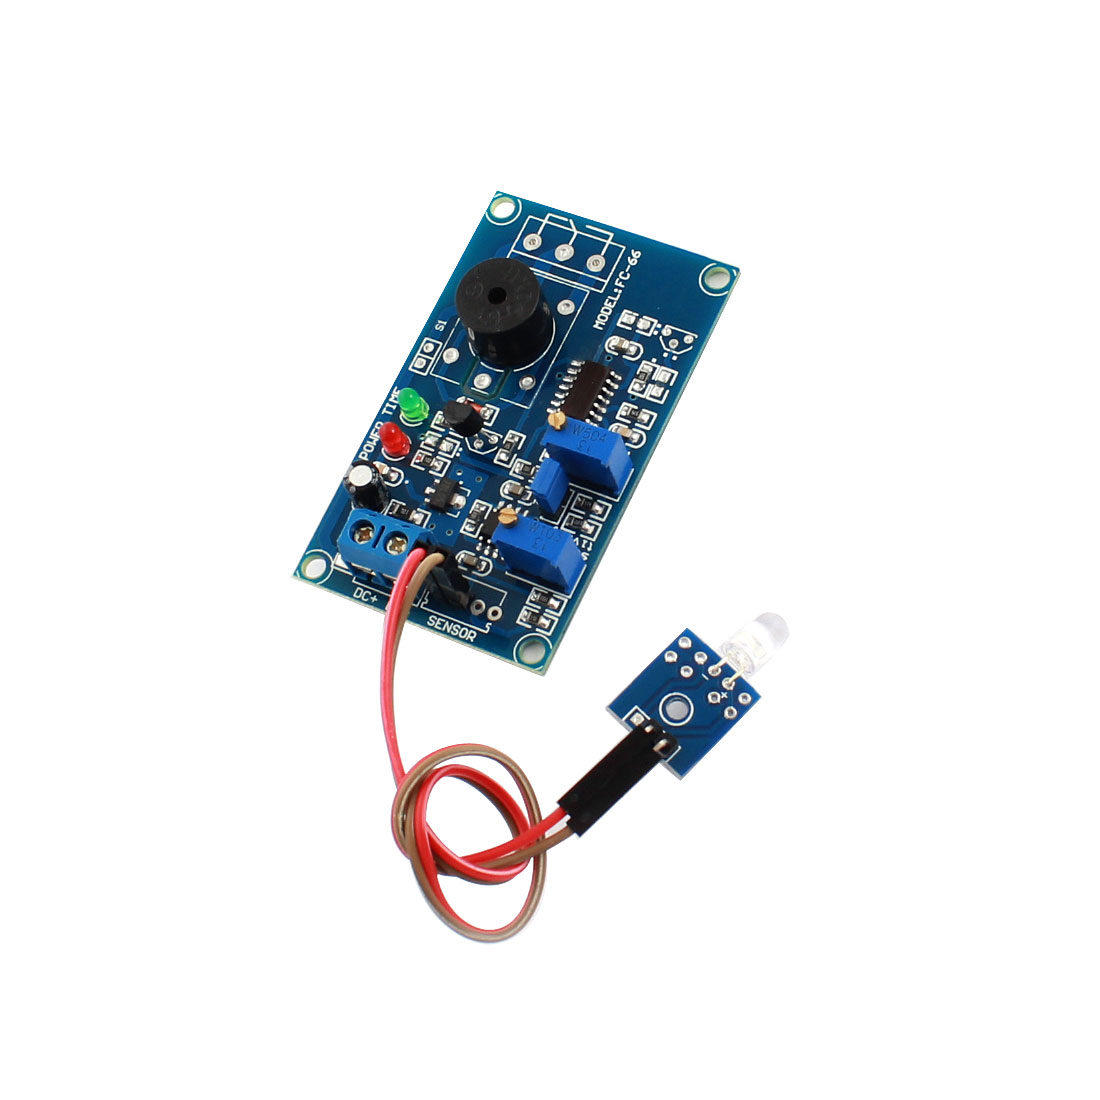 FC-66 DC 12V 20S Light Sensitivity Trigger Photosensitive Diode Sensor Delay Alarm Buzzer PCB Circuit Module